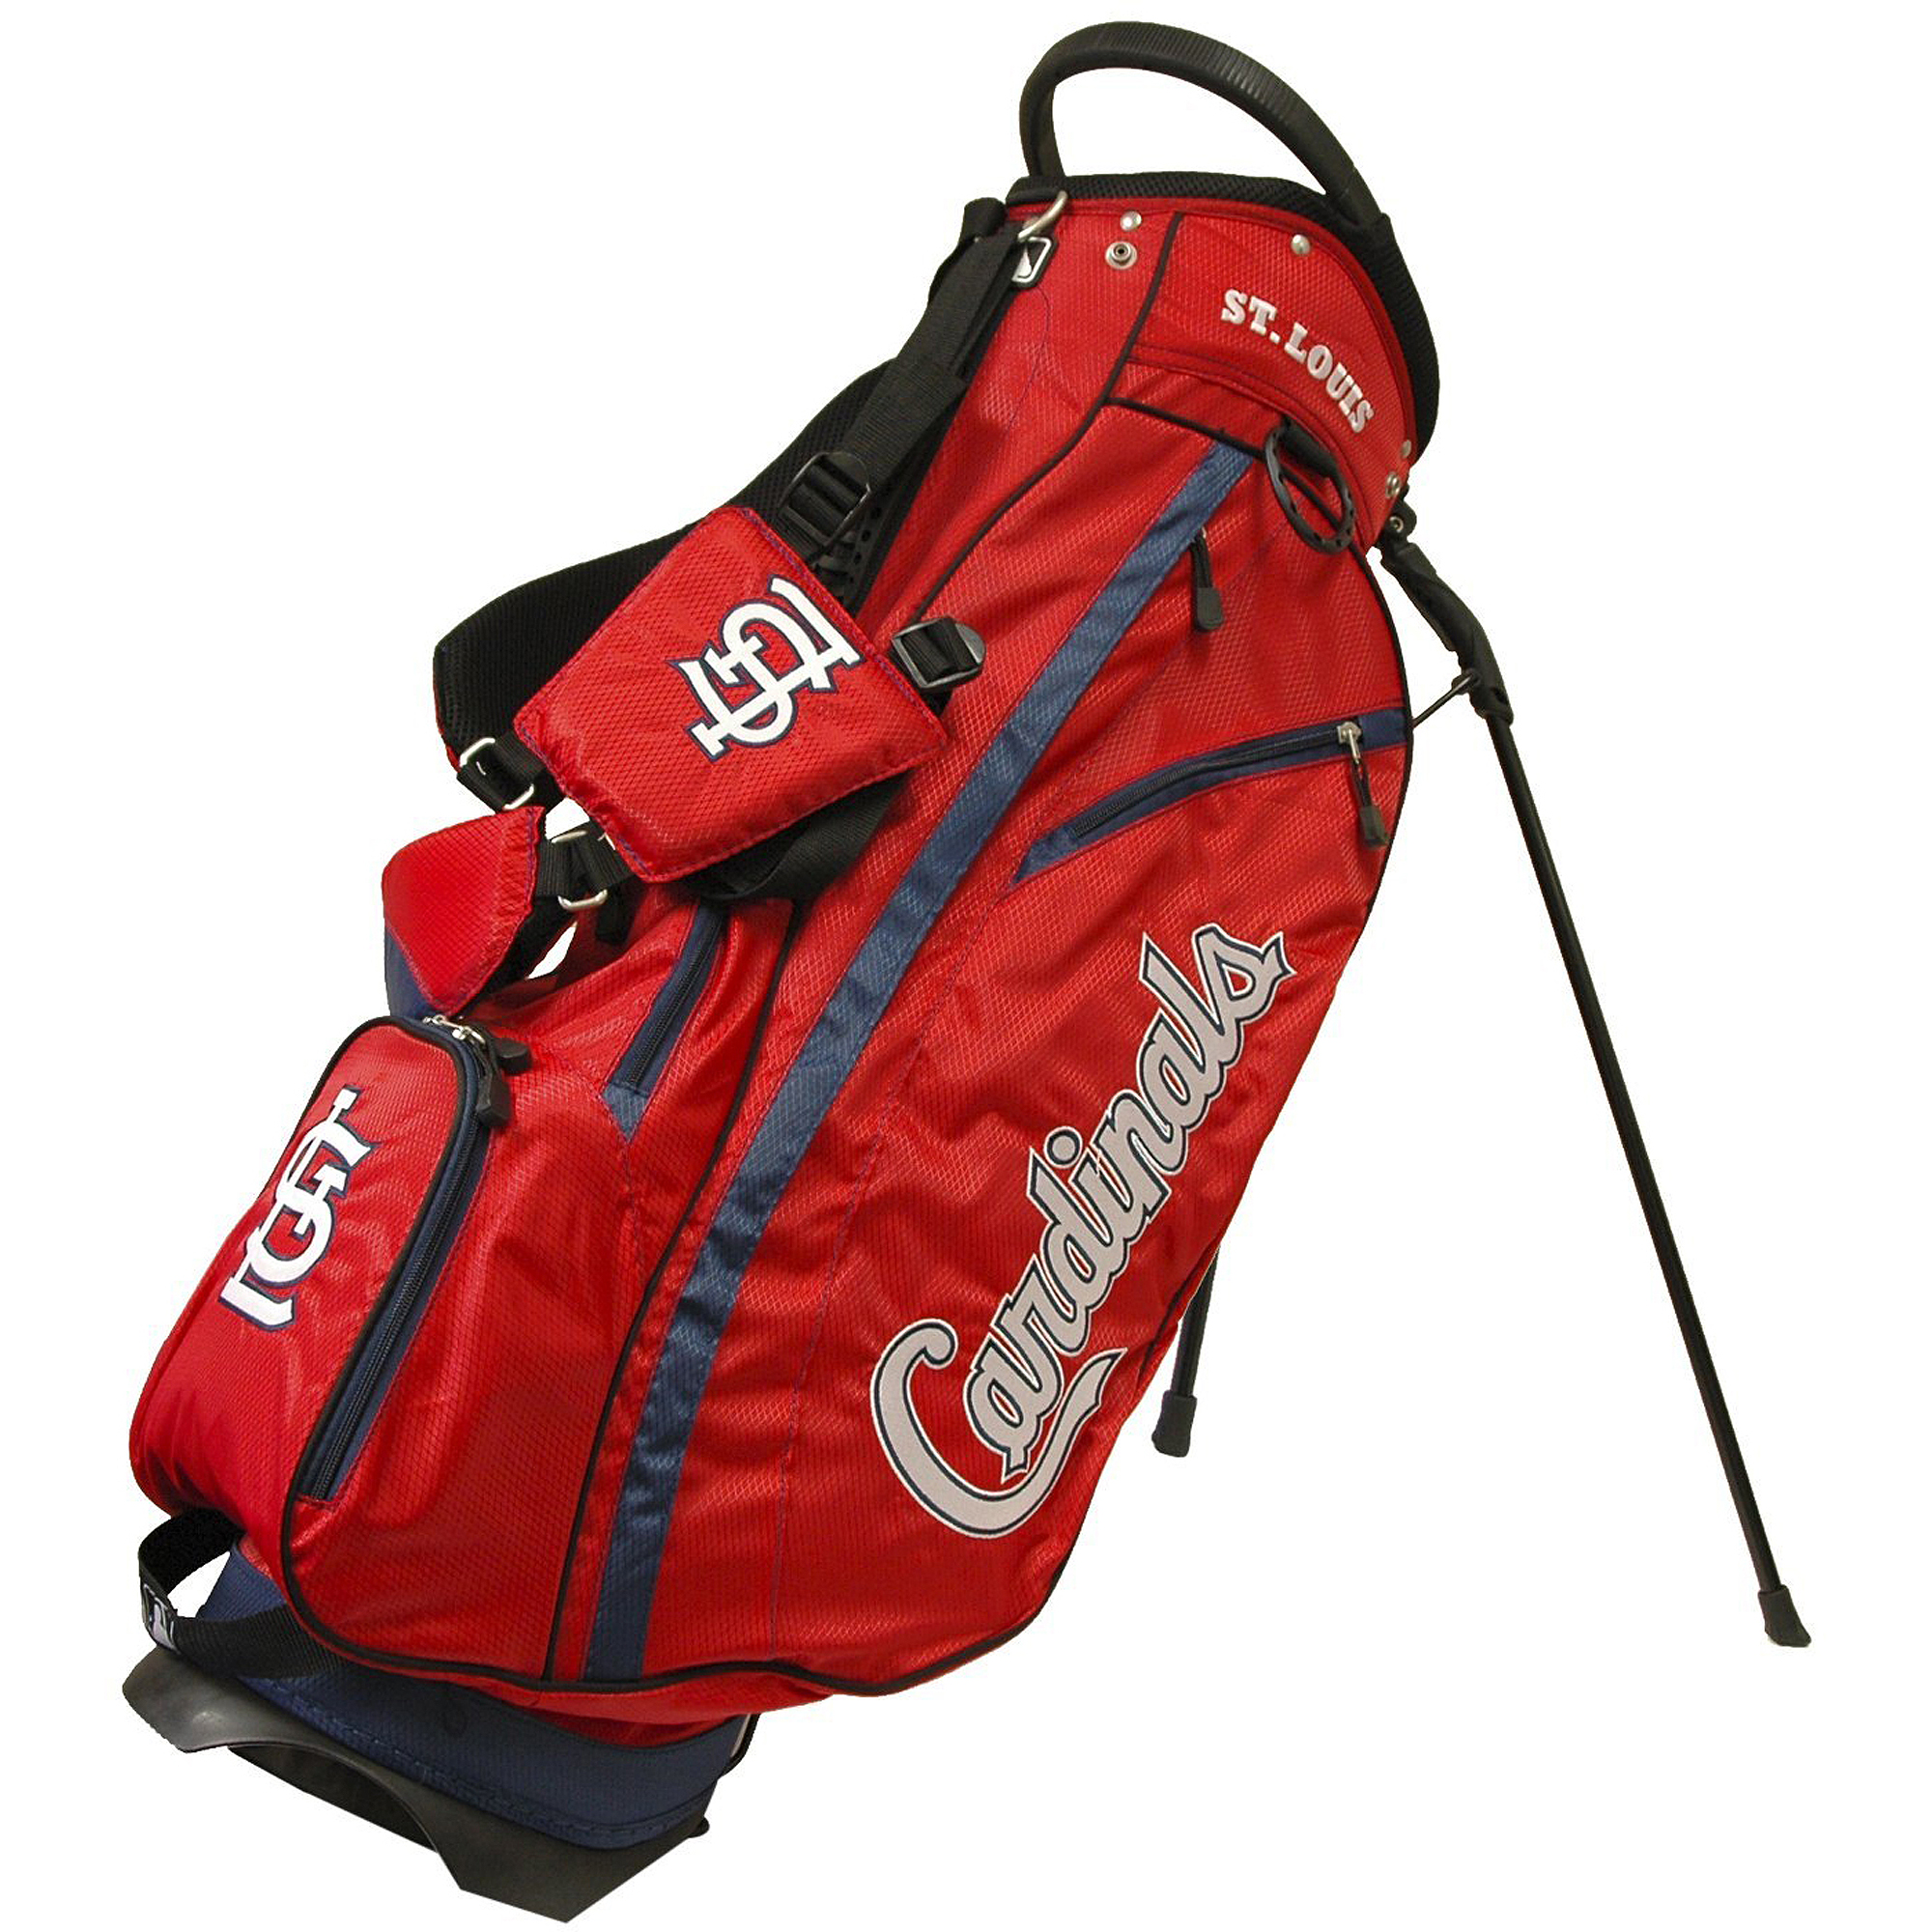 Team Golf MLB St Louis Cardinals Fairway Golf Stand Bag